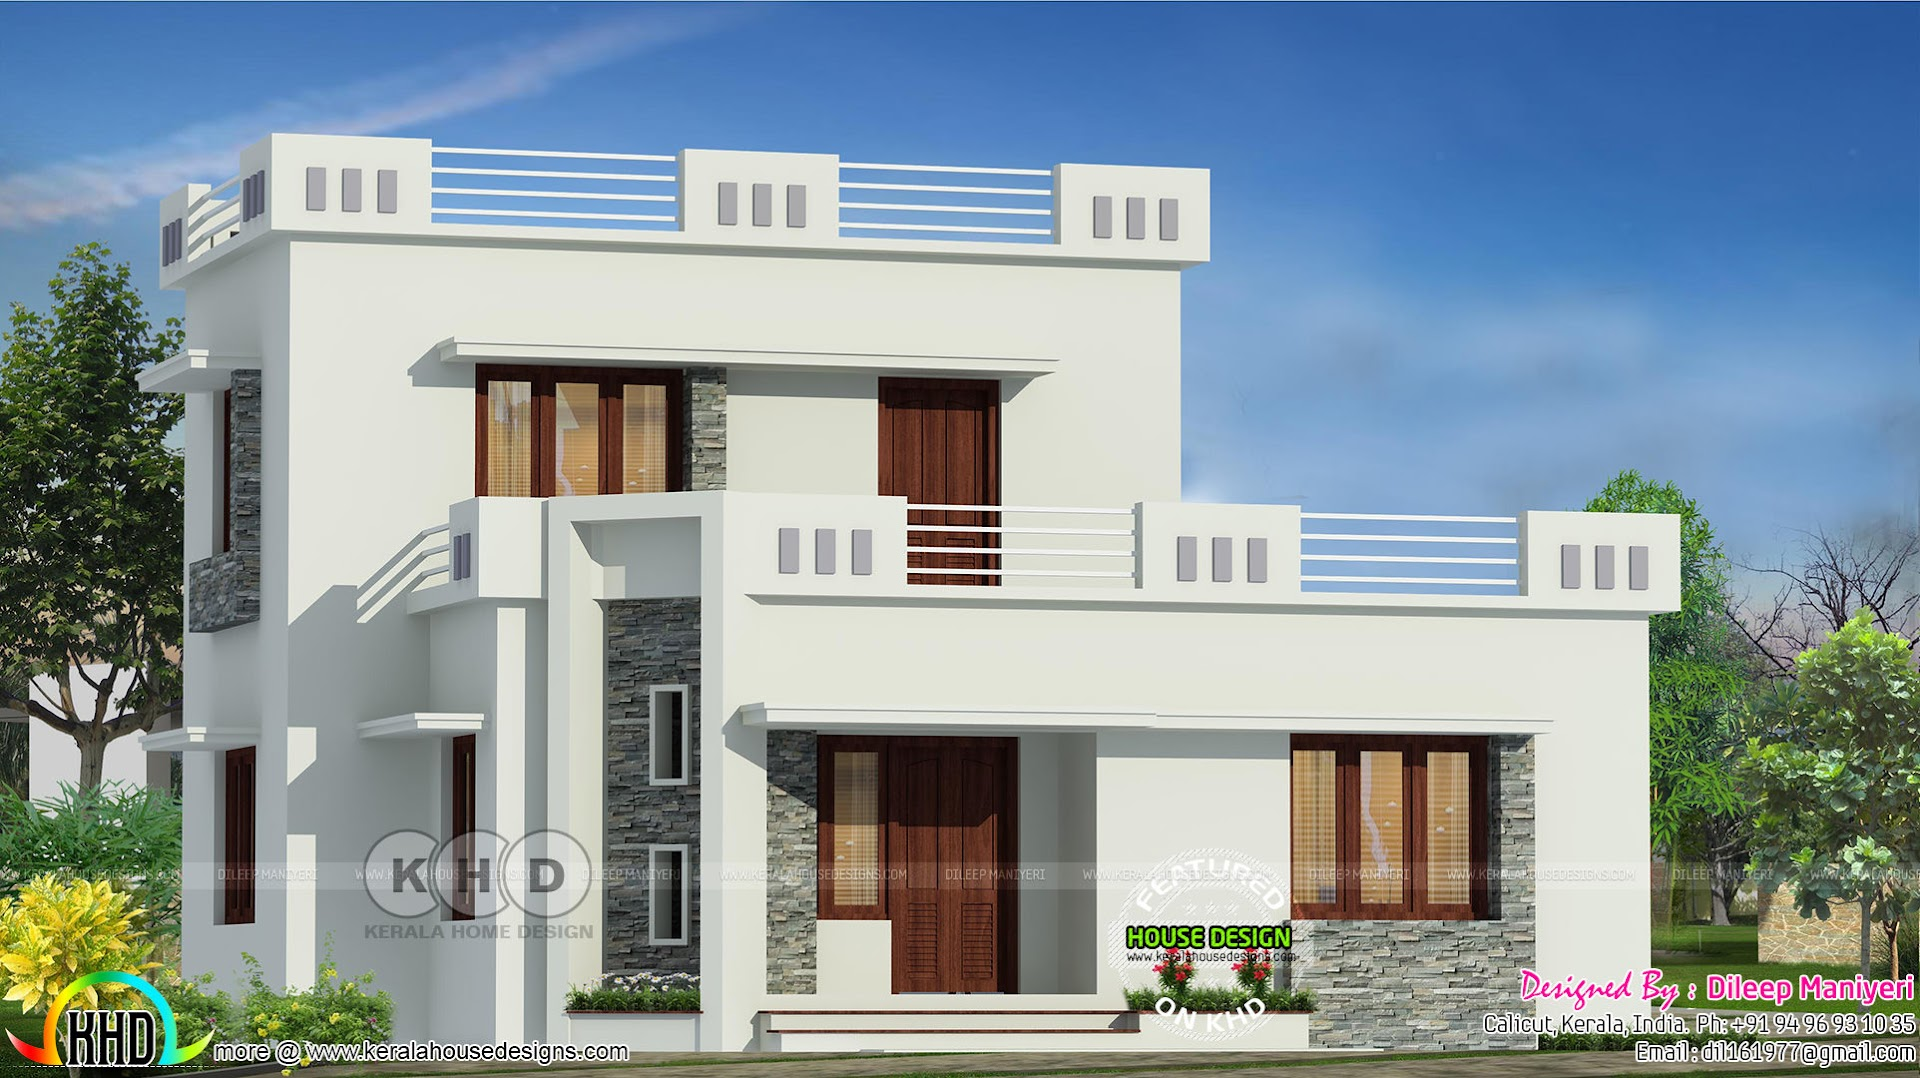 1444 Sq Ft Flat Roof 3 Bedroom Home Kerala Home Design